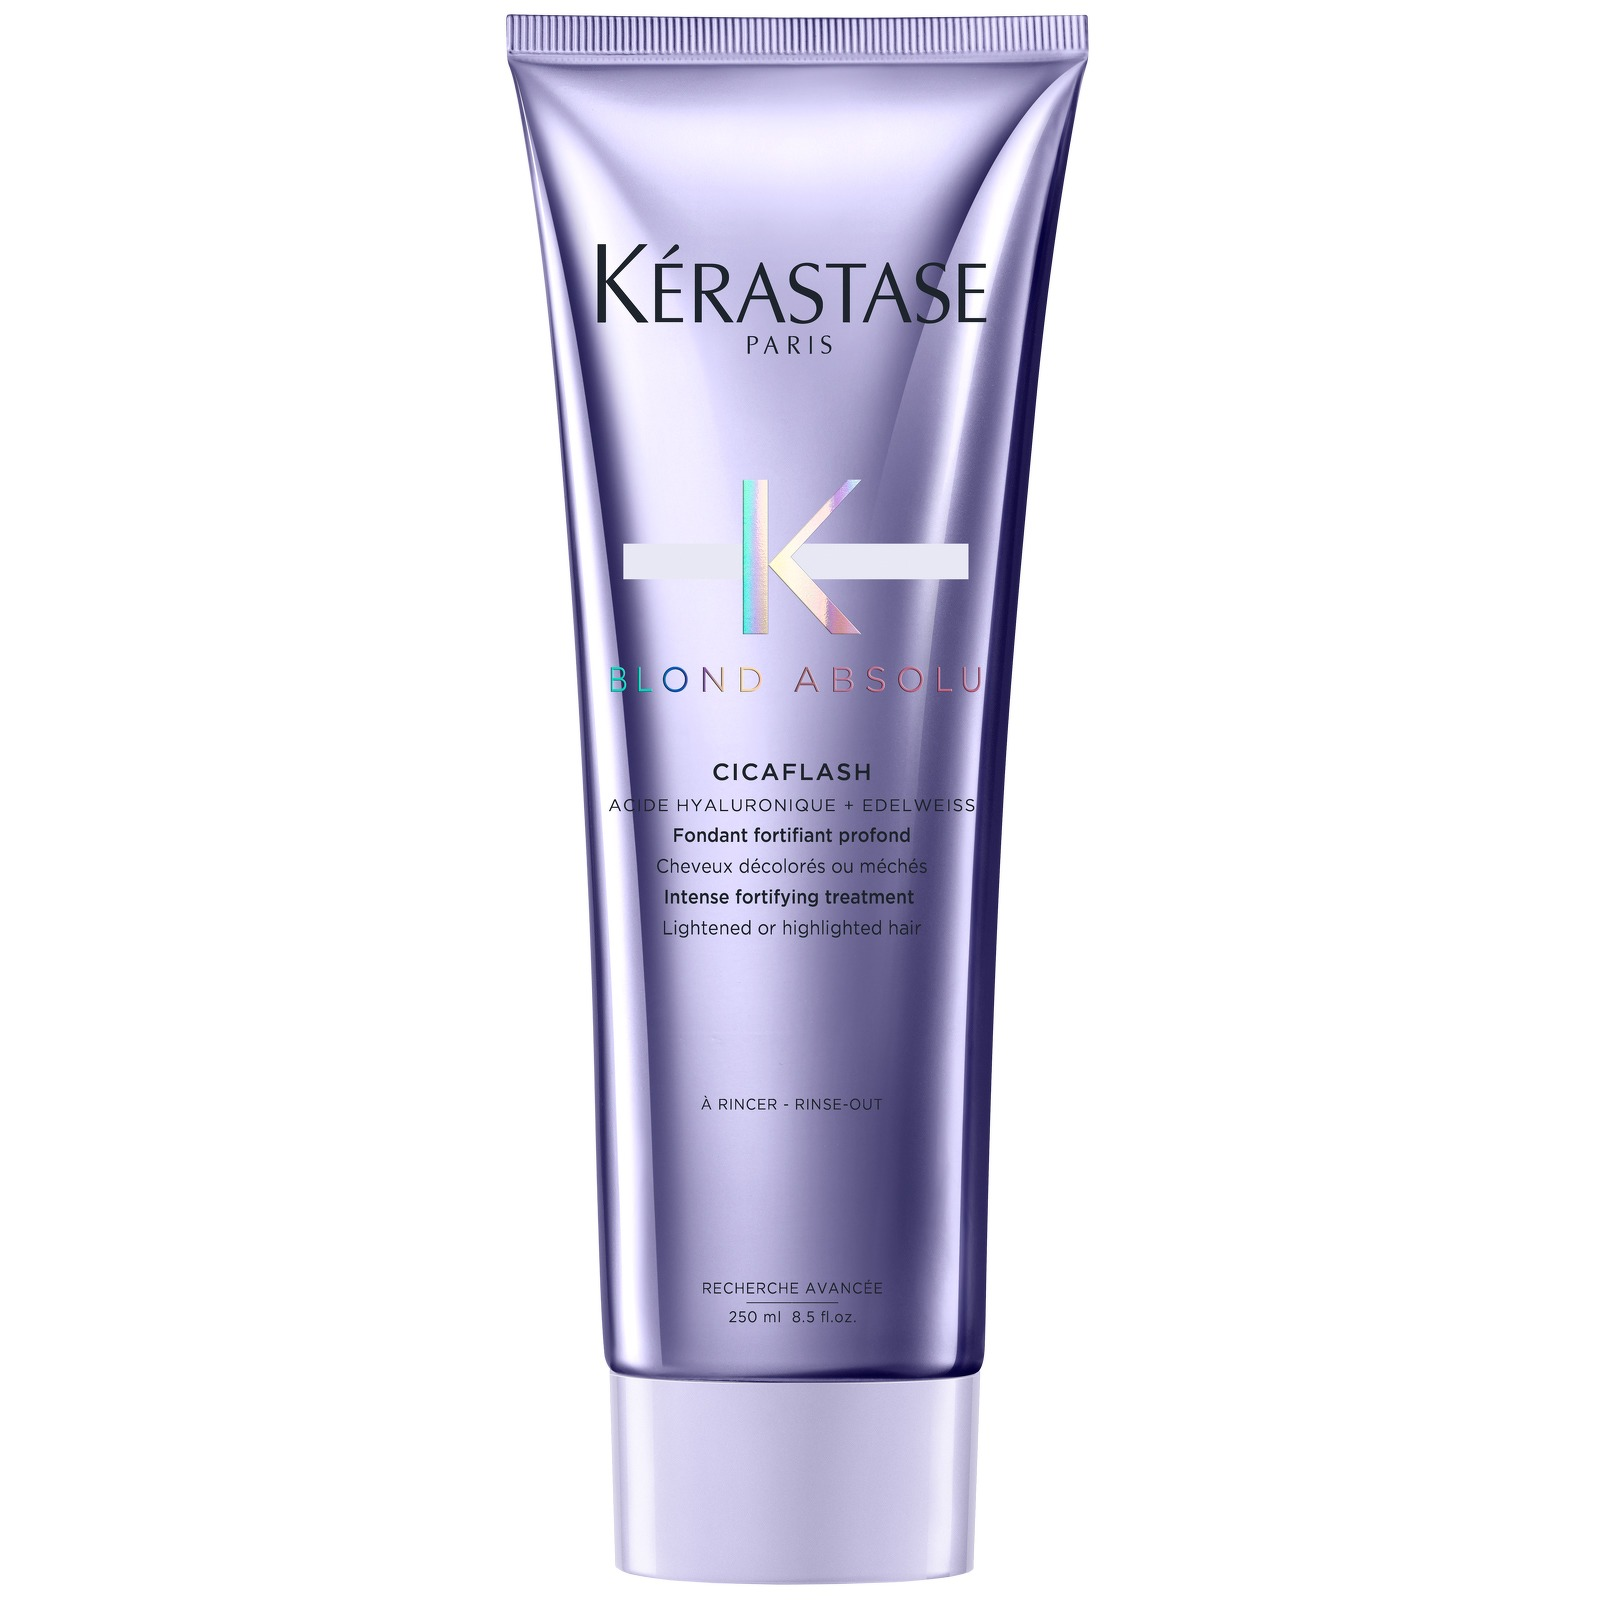 Kérastase Blond Absolu Cicaflash Intense Fortifying Treatment 250ml